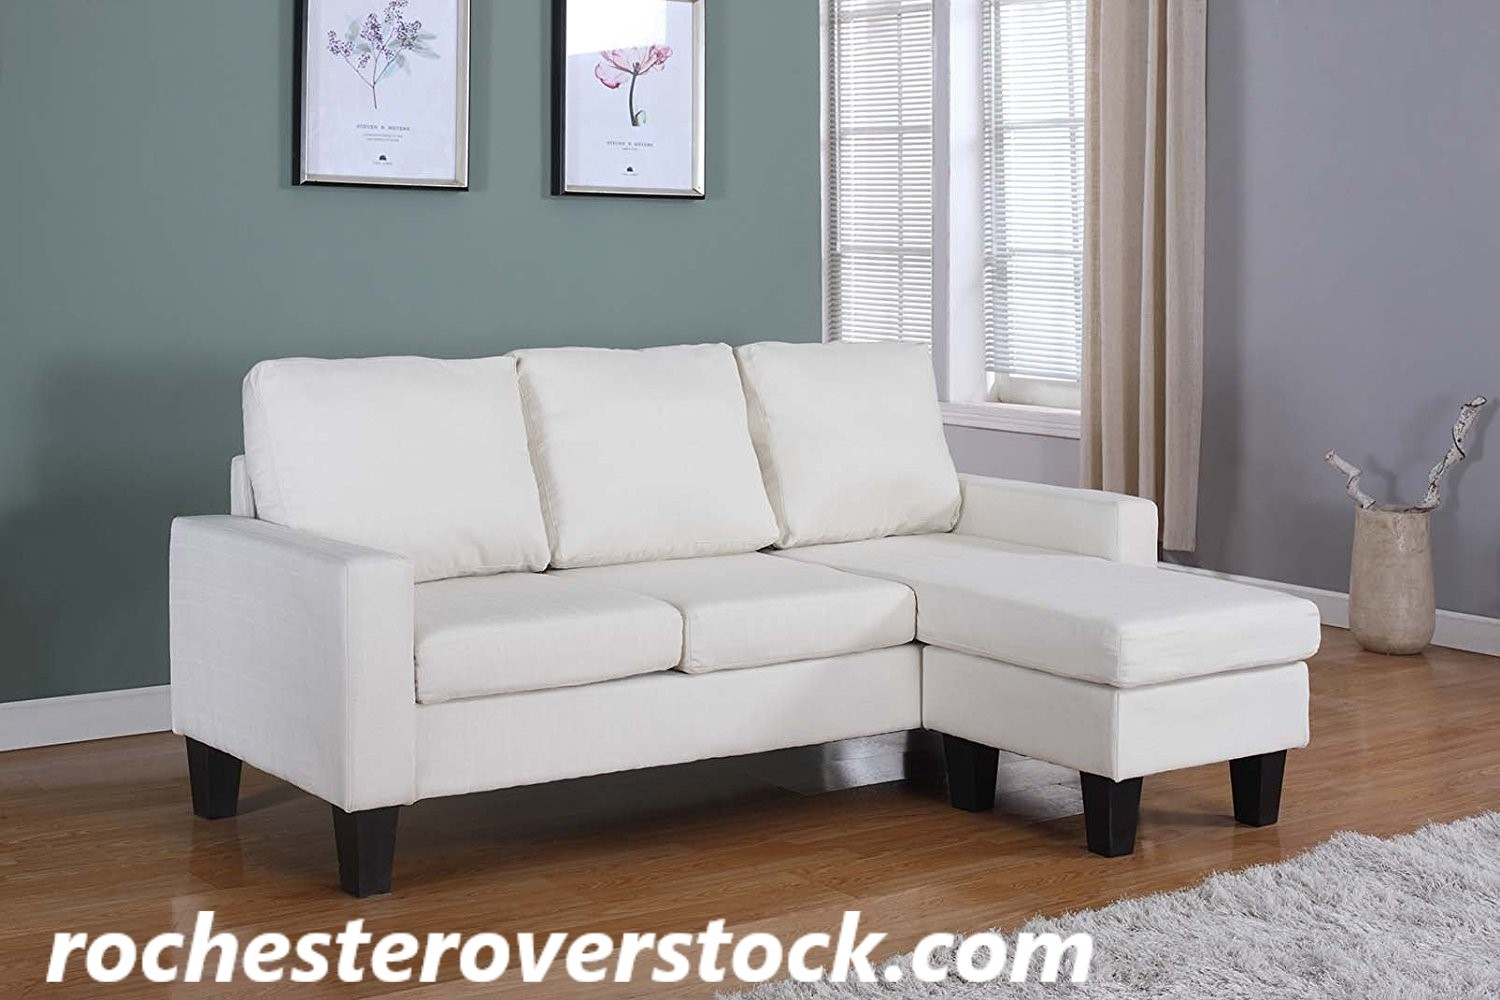 quality sofas for less sofa seat height cm linen cloth modern contemporary upholstered